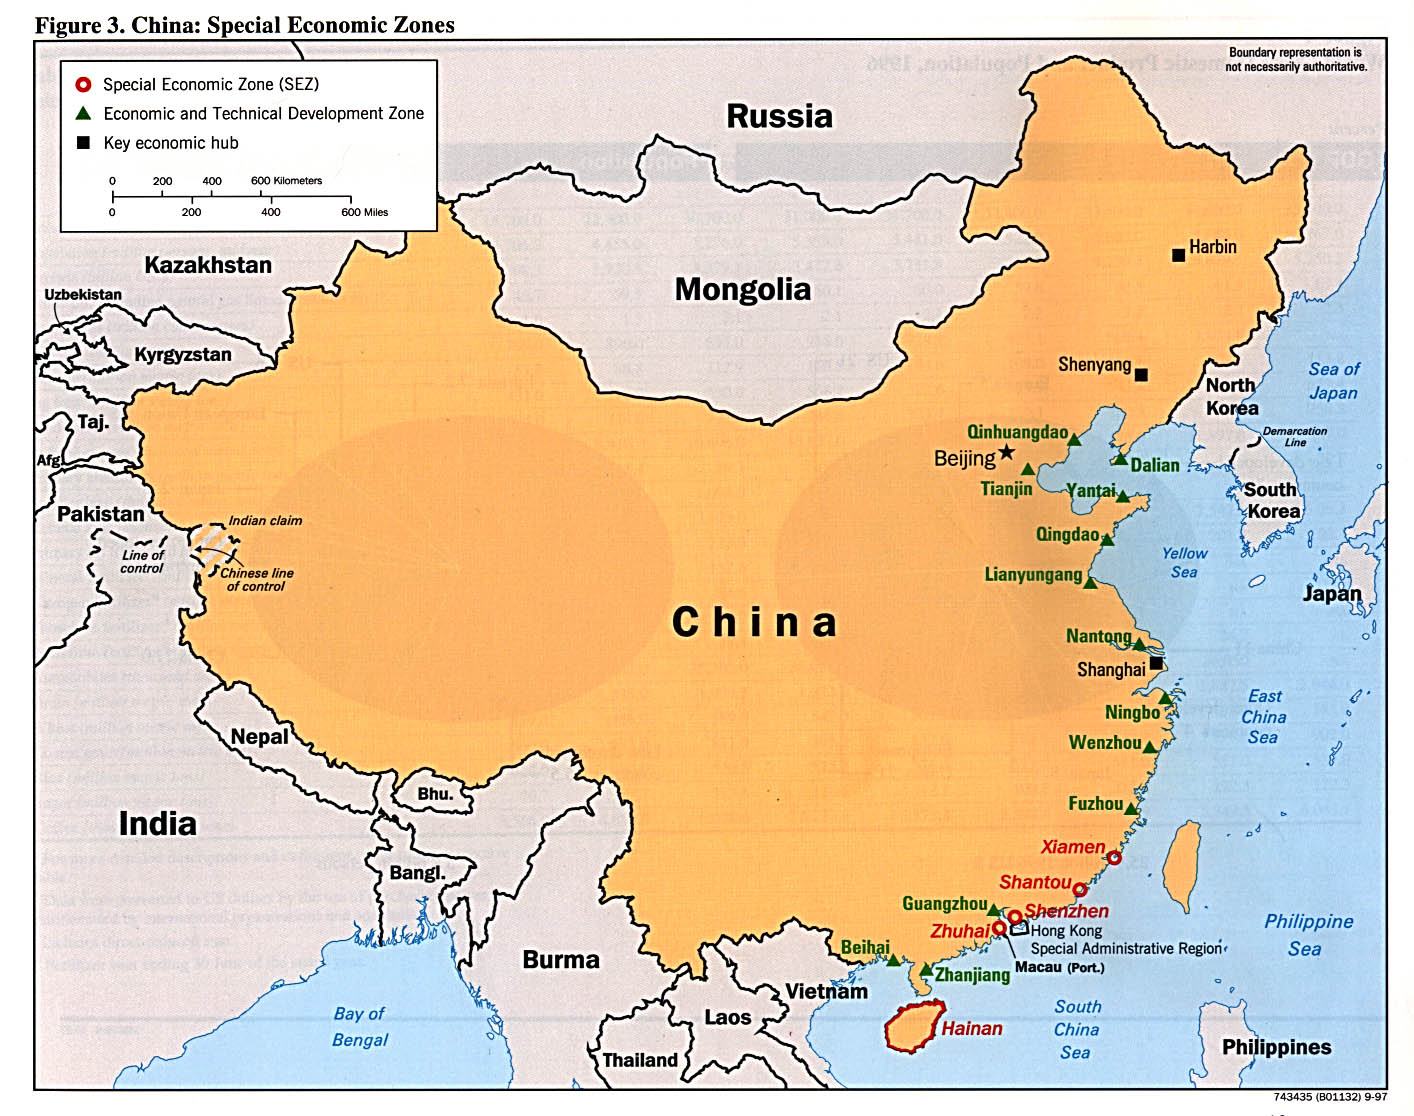 Mapa de las Zonas Económicas Especiales de China